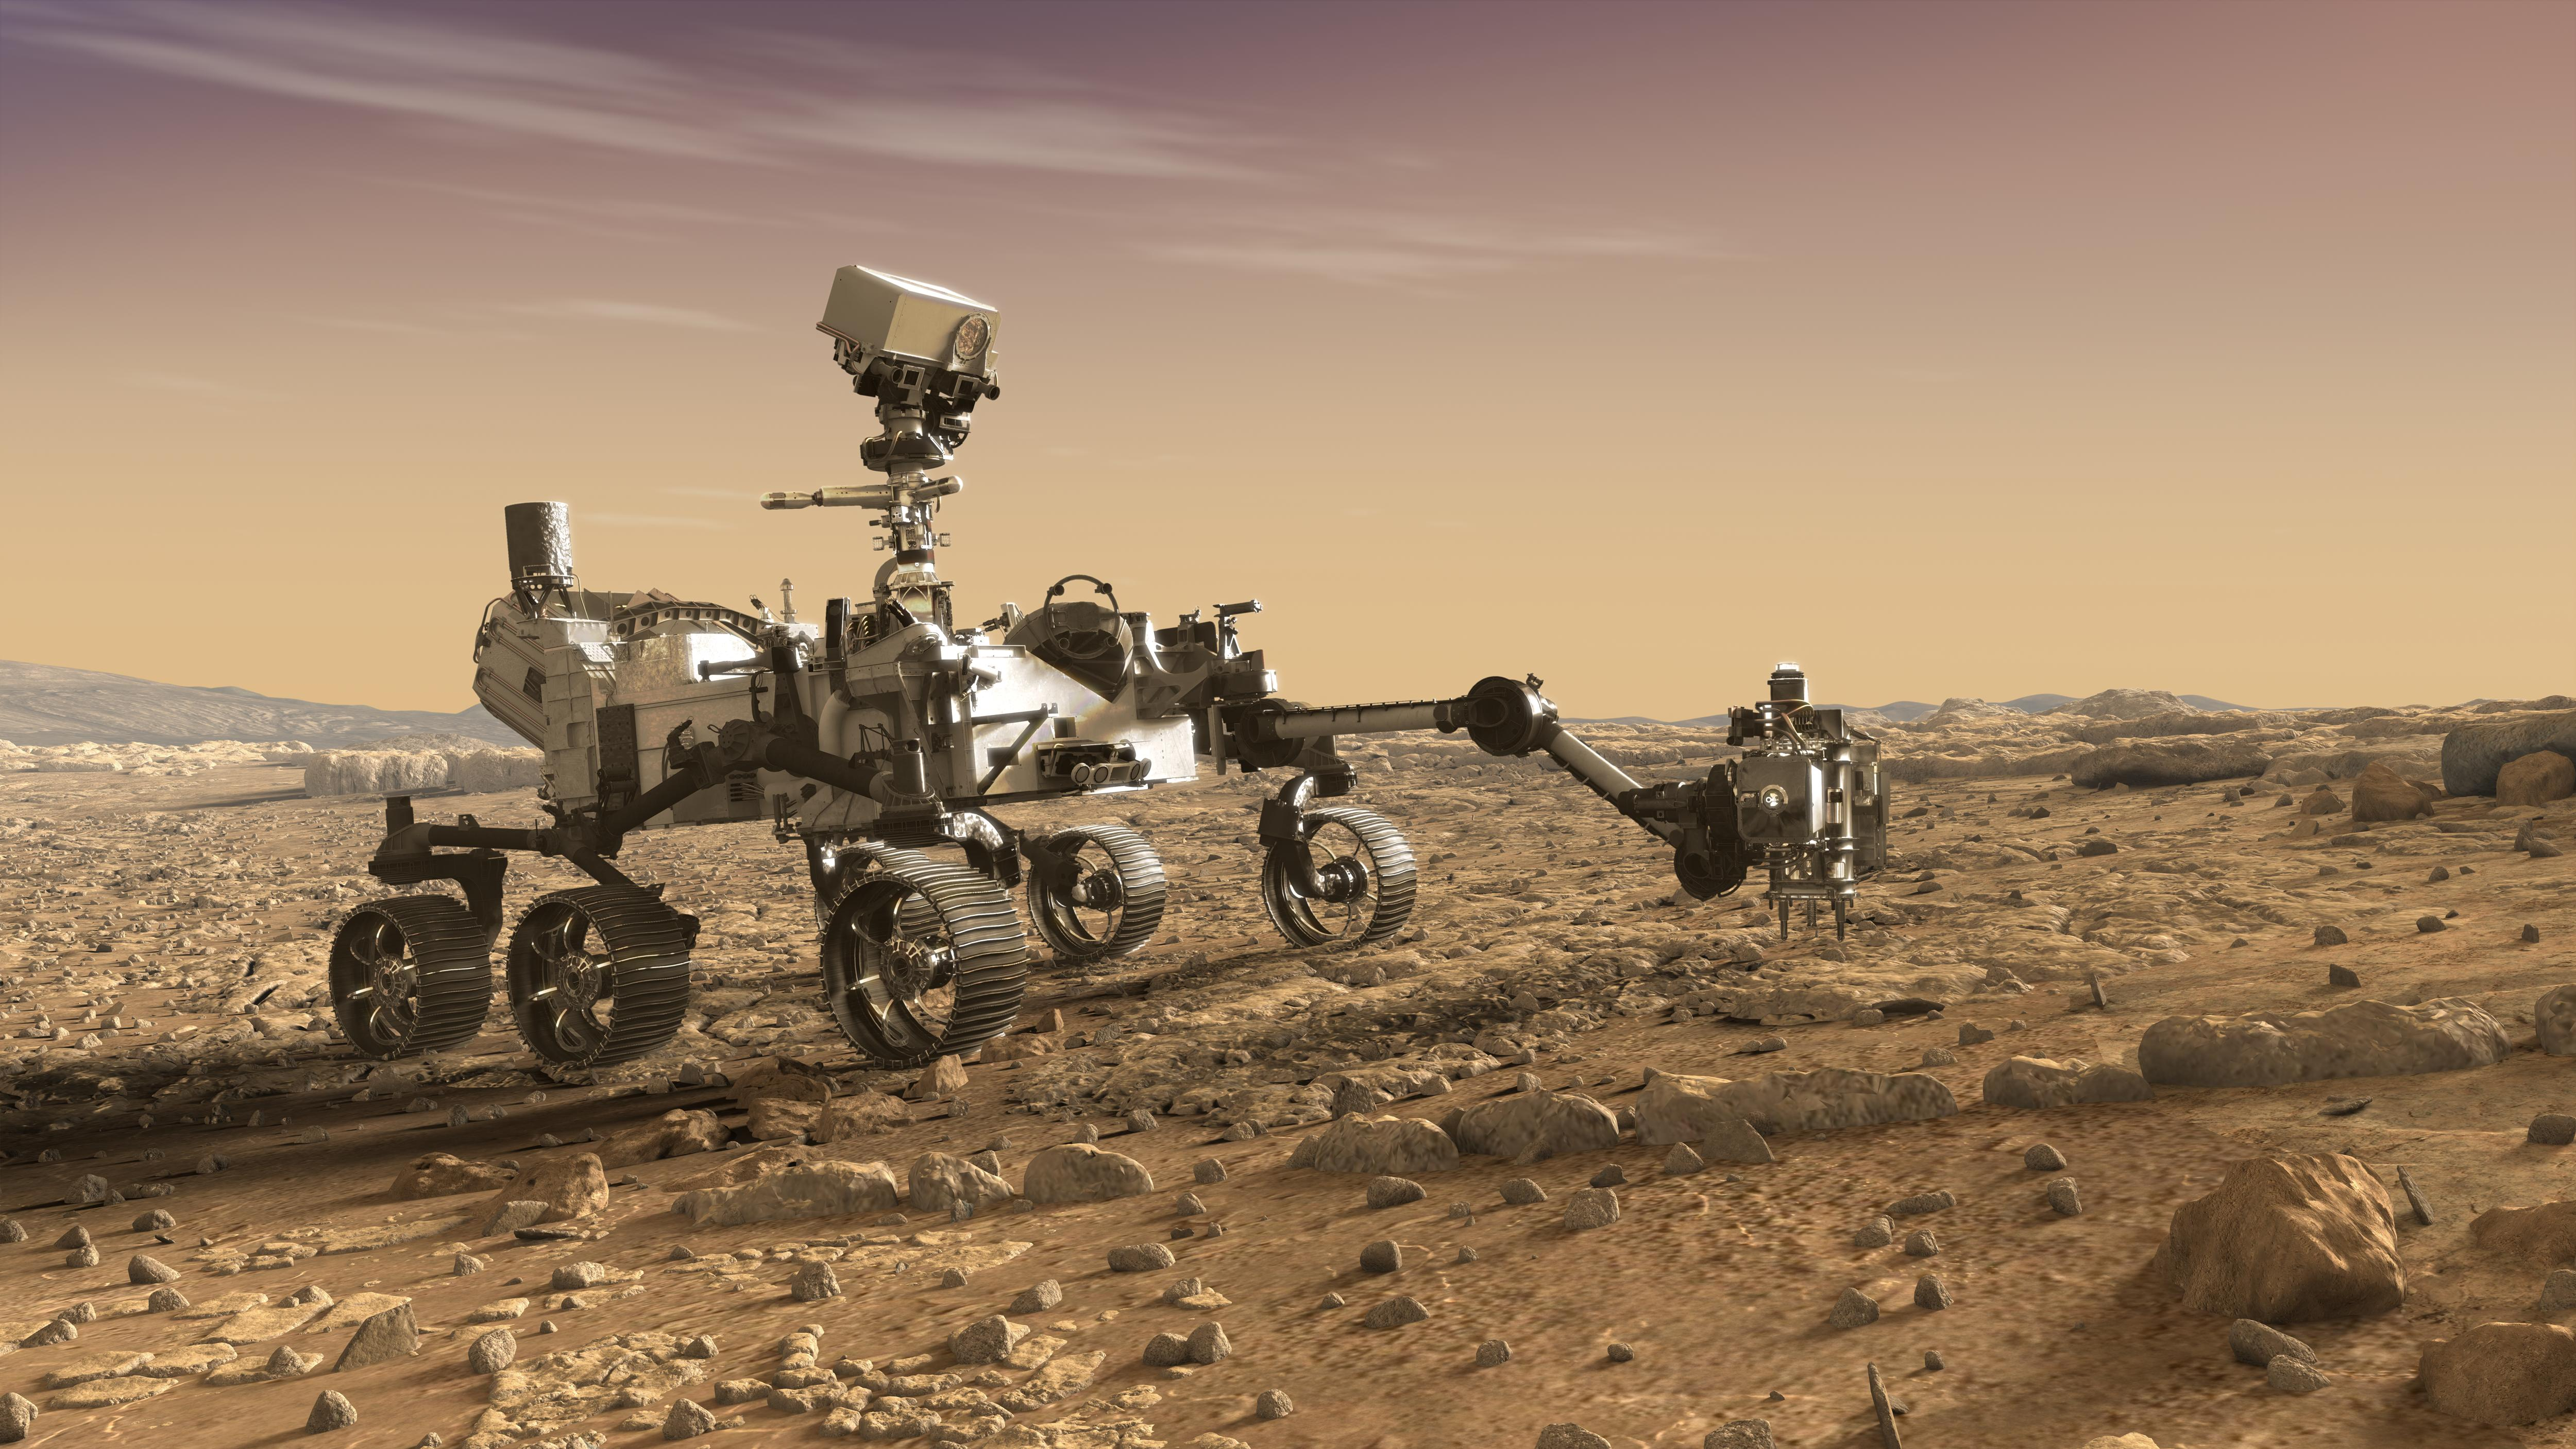 mars rover mission nasa - photo #19